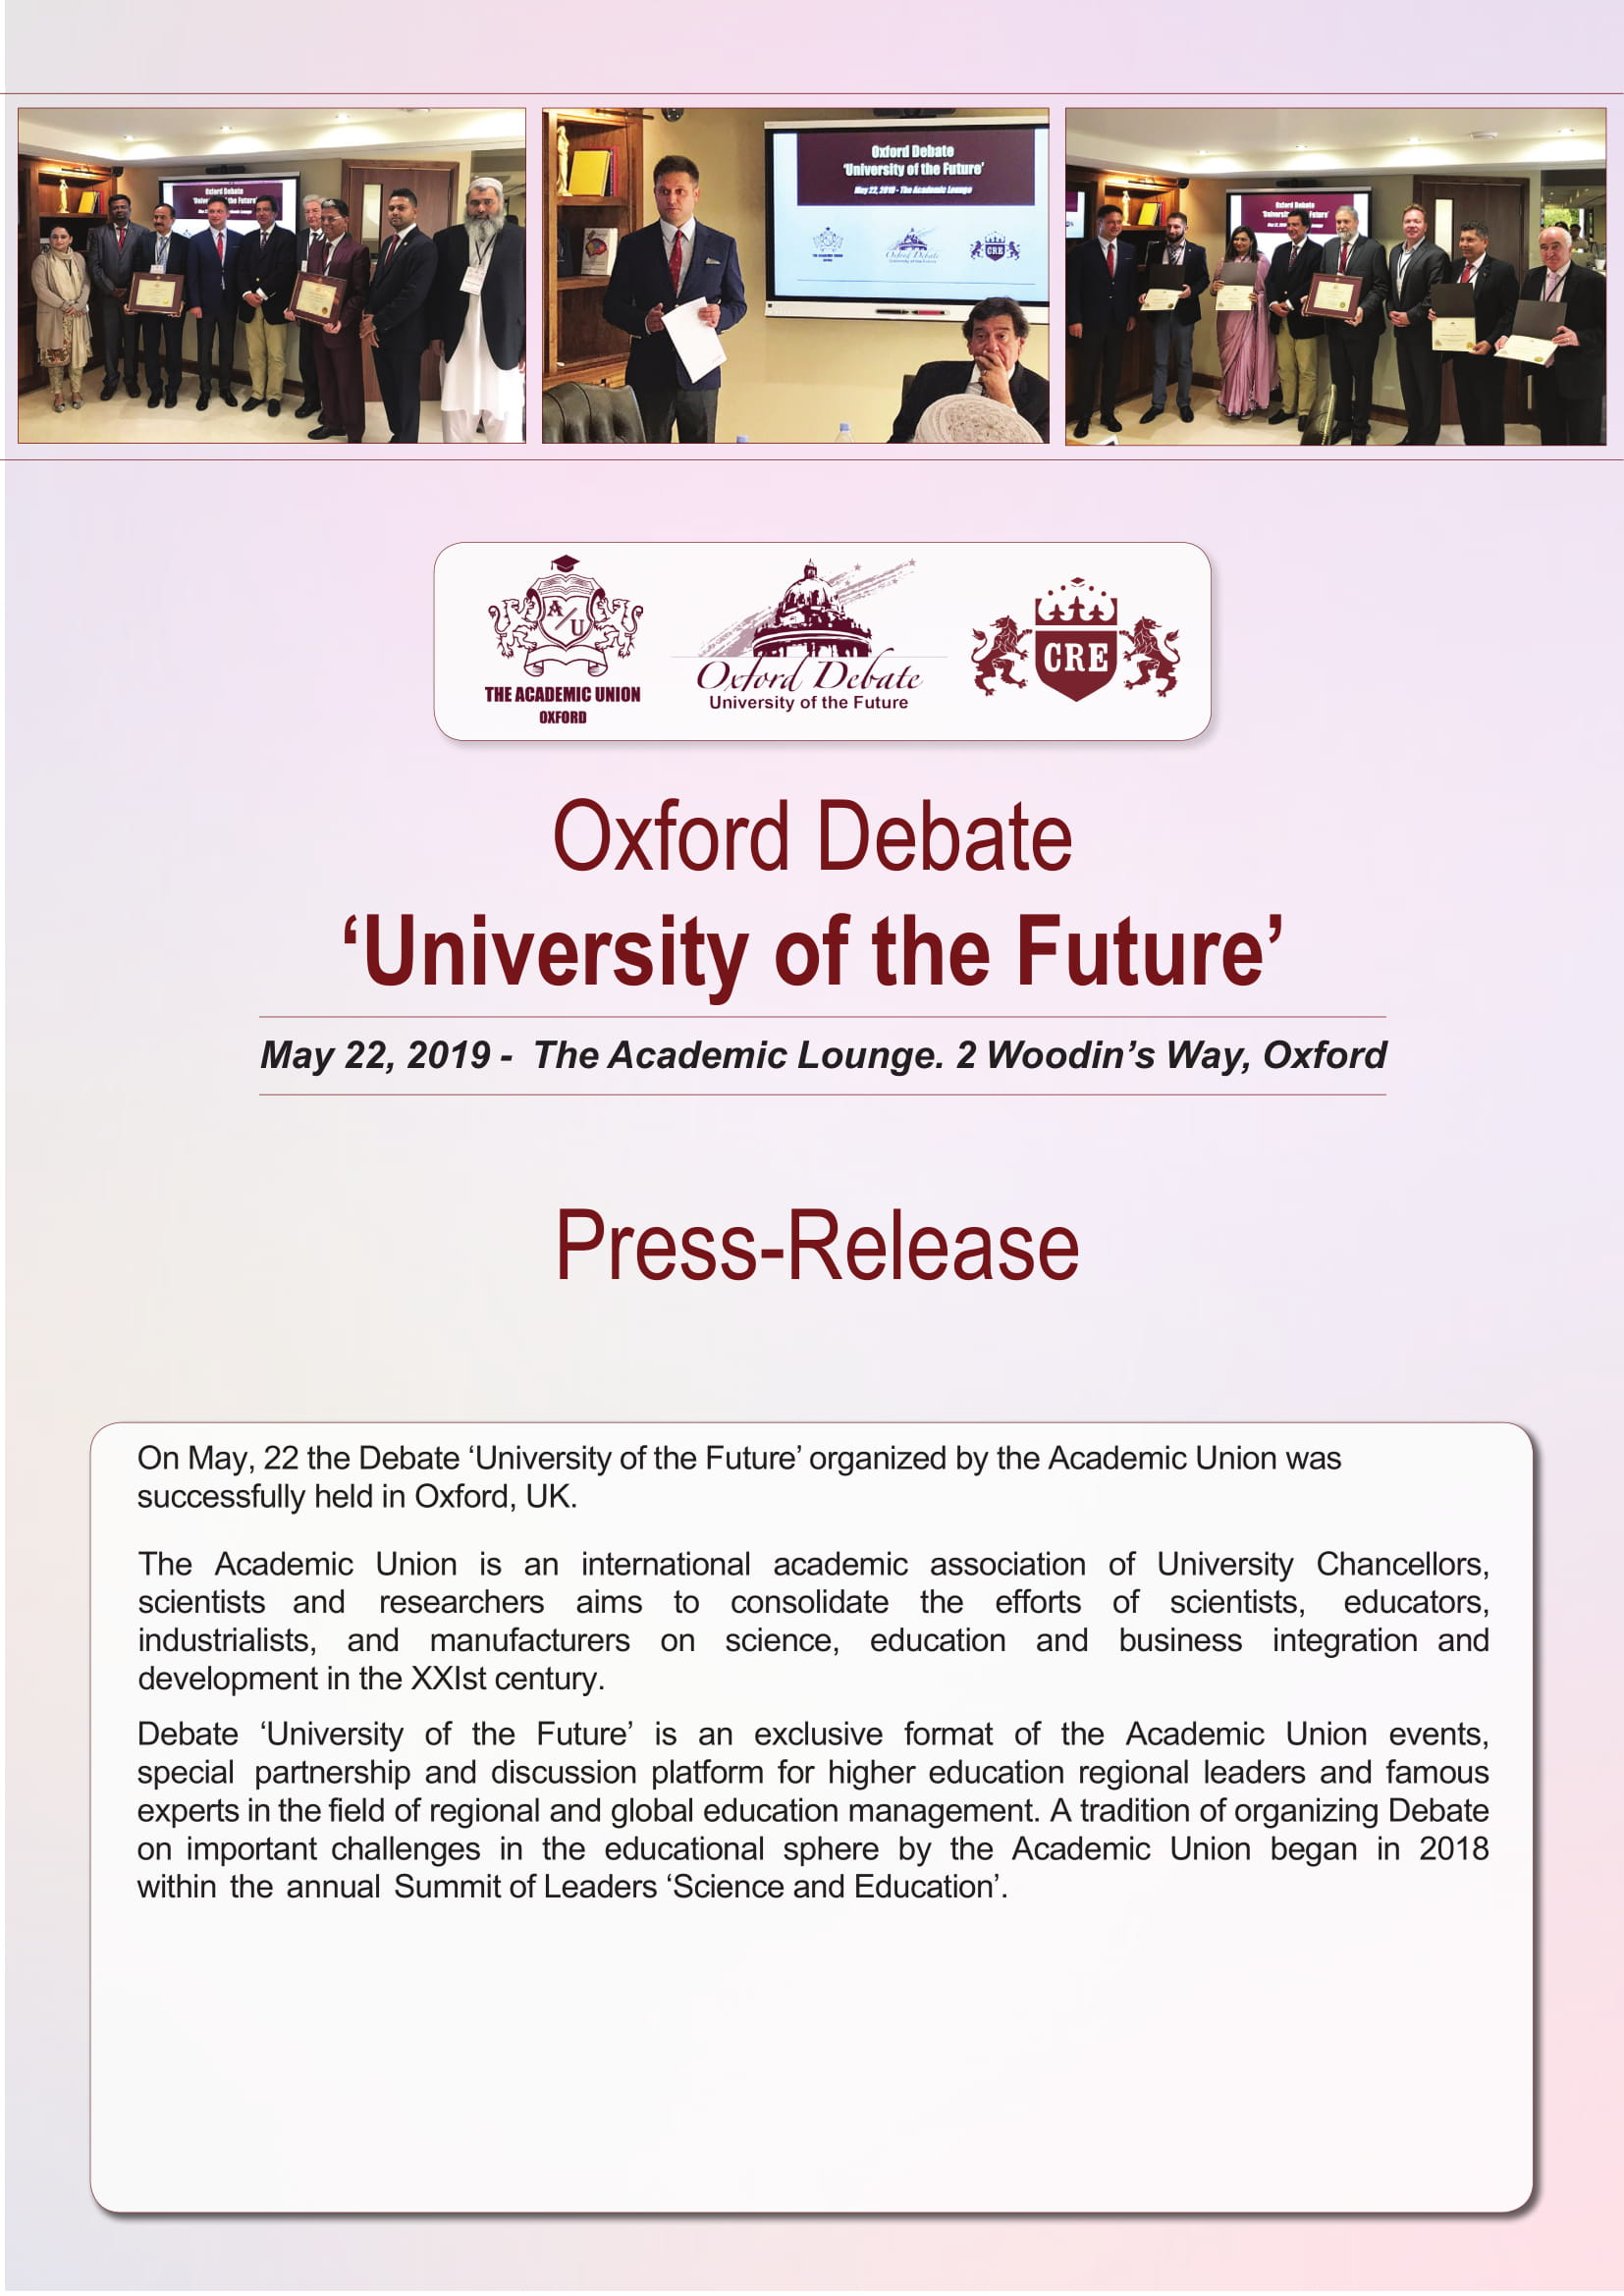 Oxford Debate: 'University of the Future'